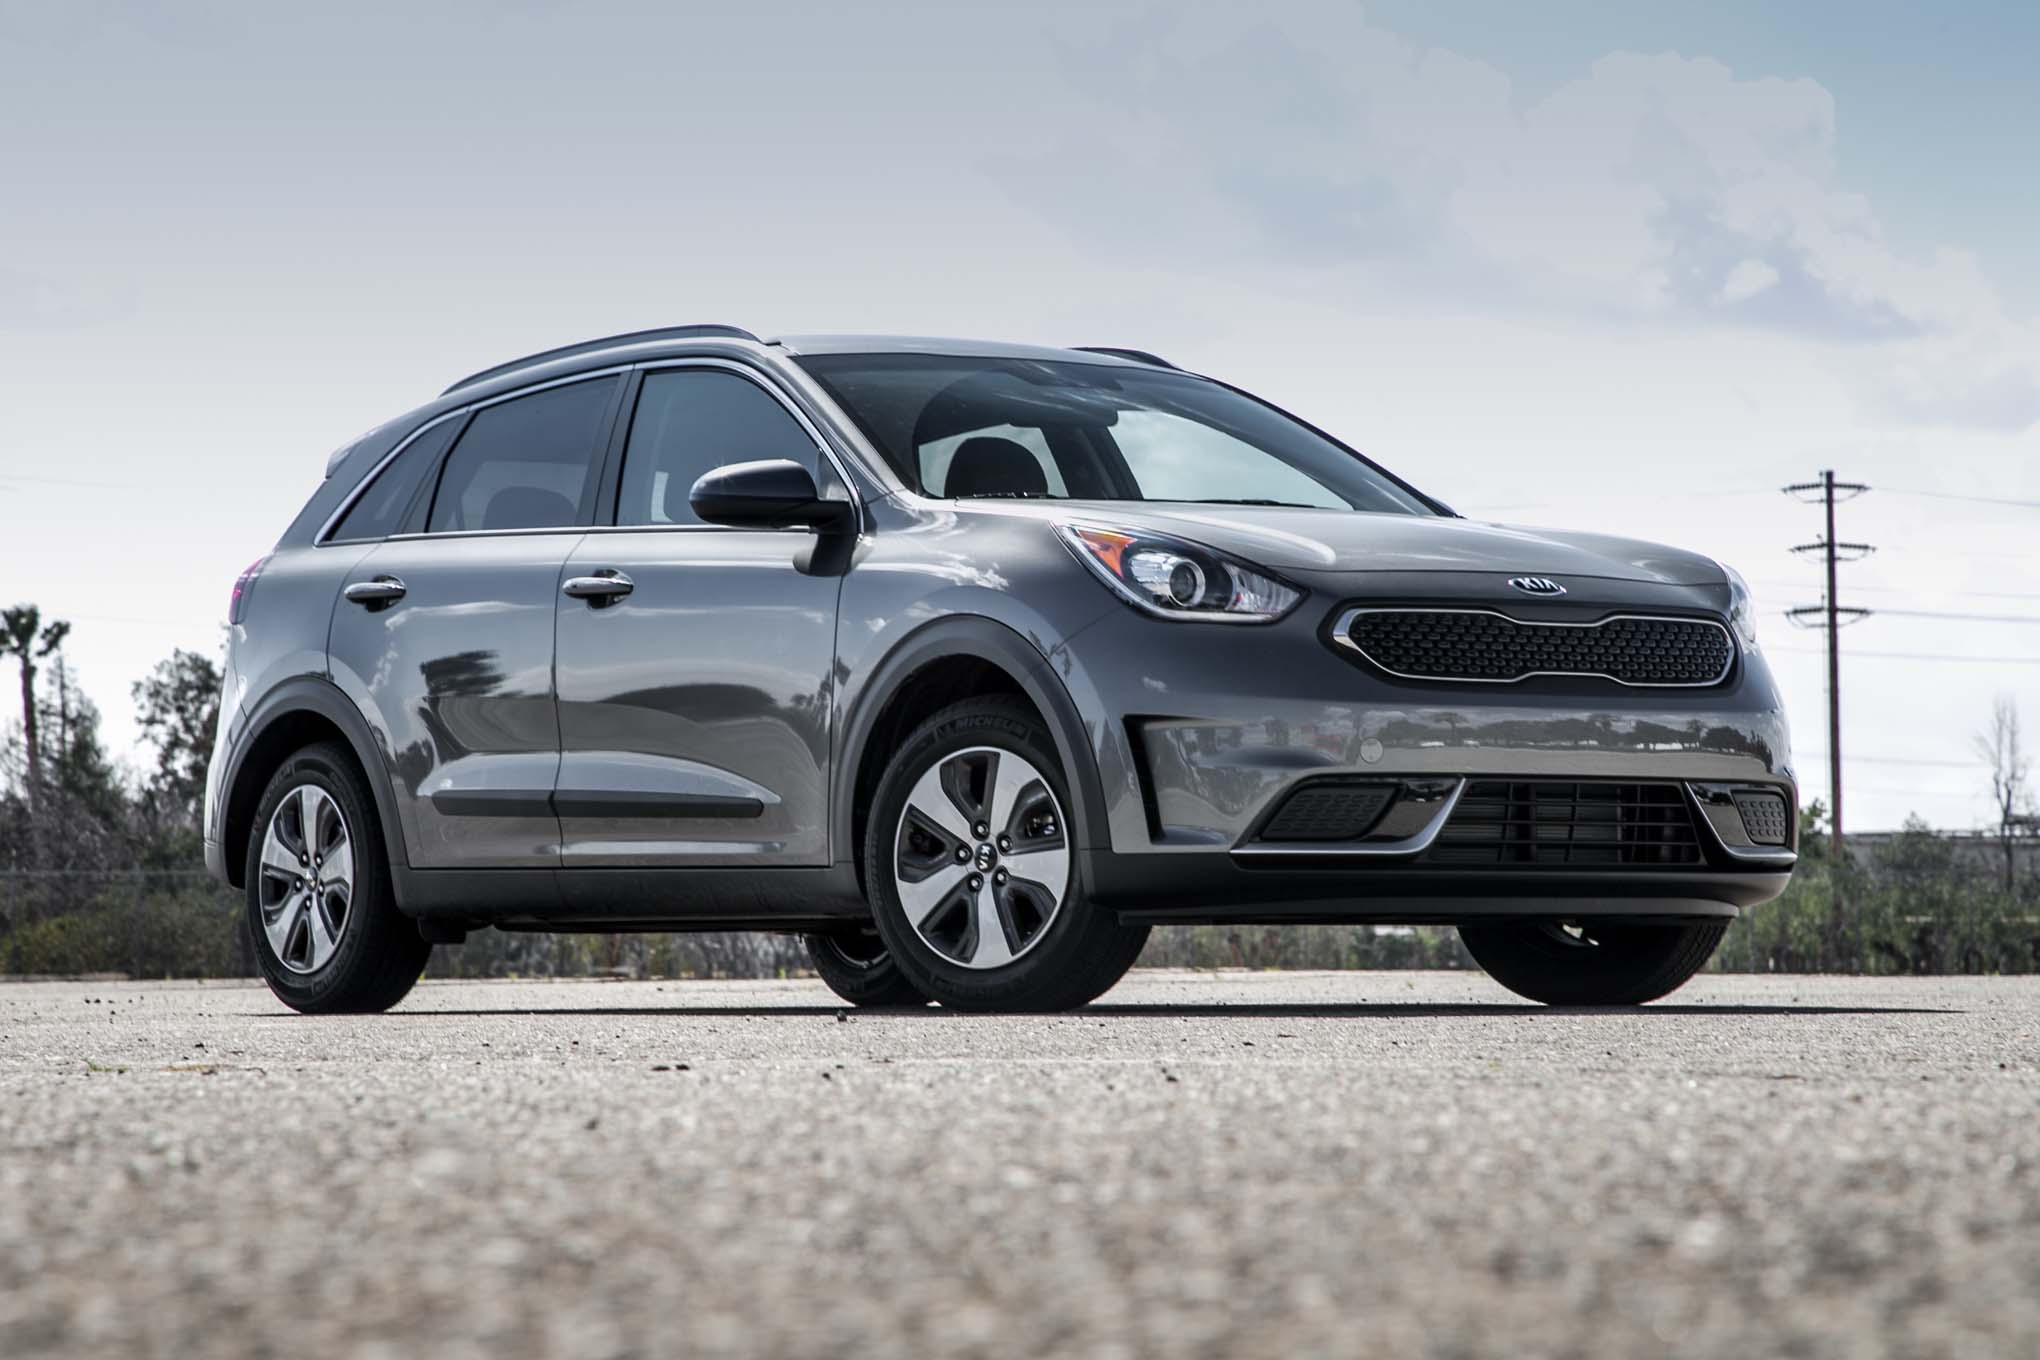 kia niro 2017 primera prueba motor trend en espa ol. Black Bedroom Furniture Sets. Home Design Ideas